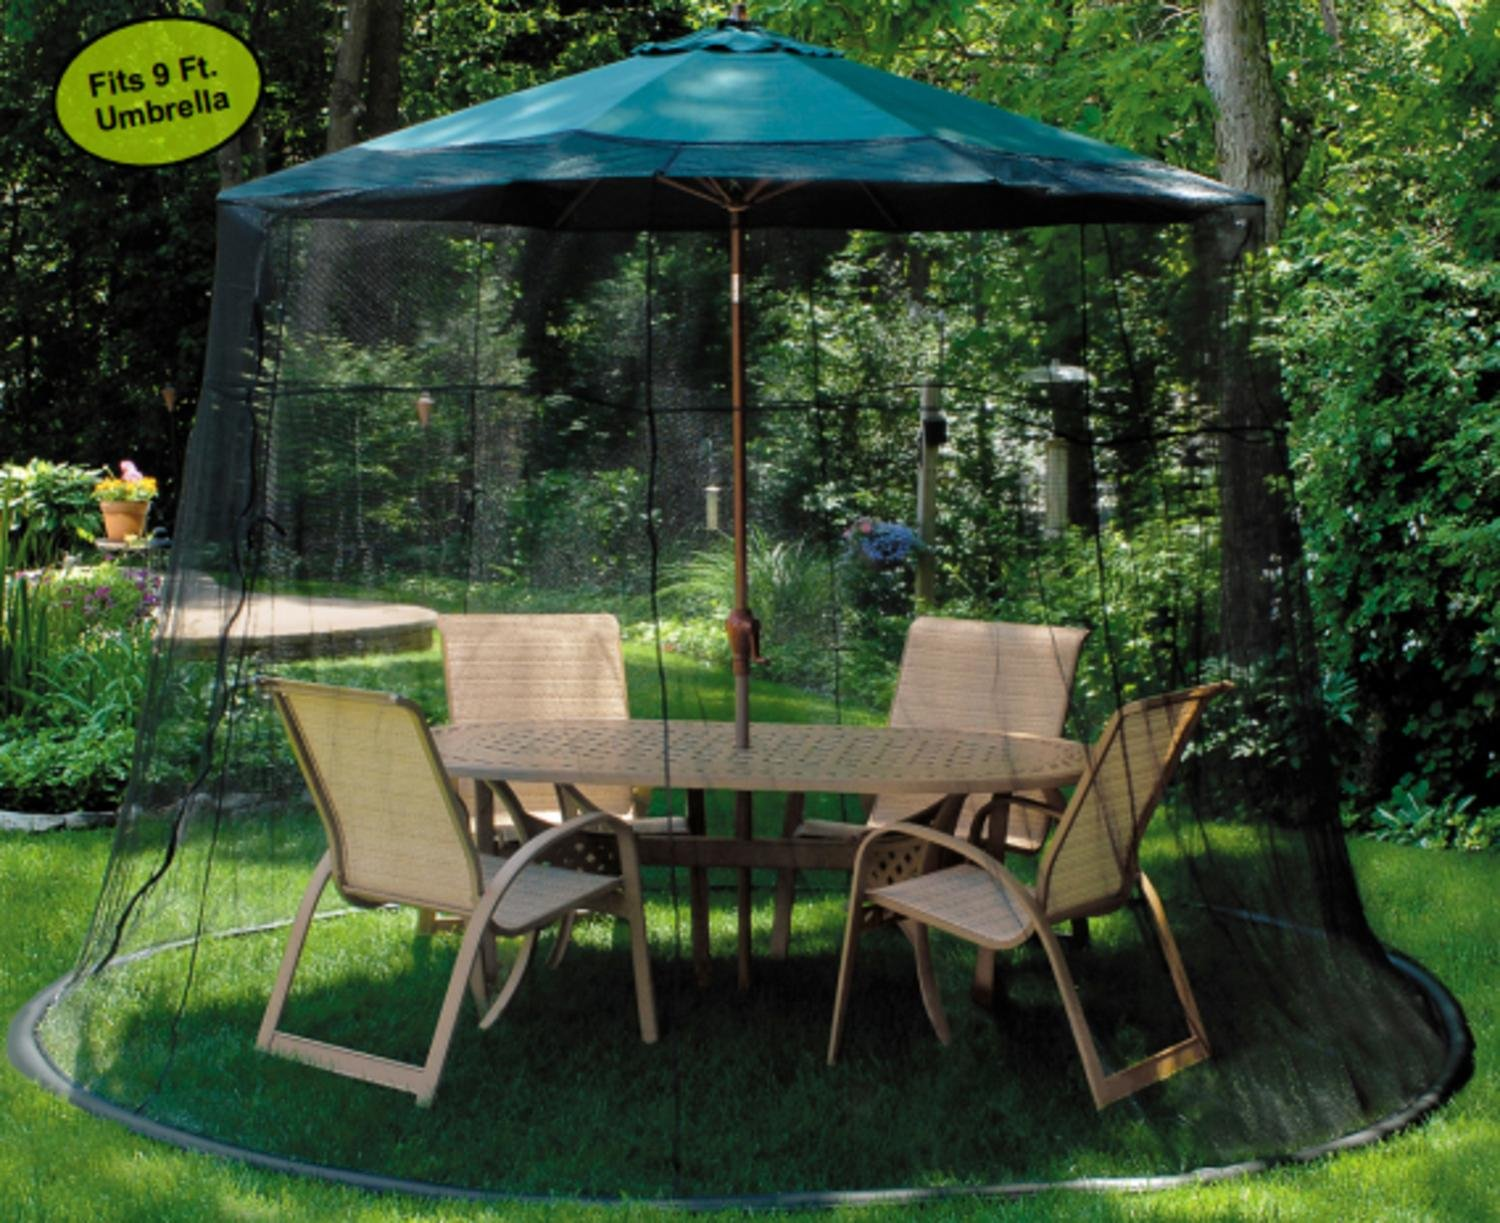 Amazon.com: LB International Mesh Mosquito Net Enclosure   Fits Over A 9u0027  Patio Umbrella: Garden U0026 Outdoor